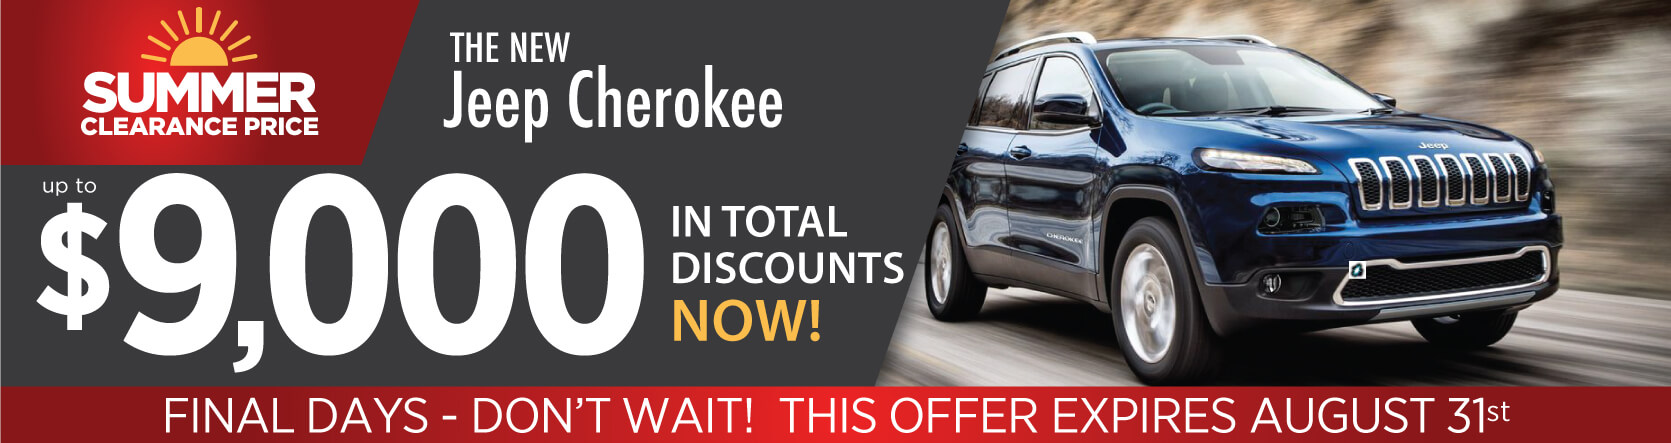 CD-2018-Jeep-Cherokee-Discount-TEST-2-Slider-Aug-2018